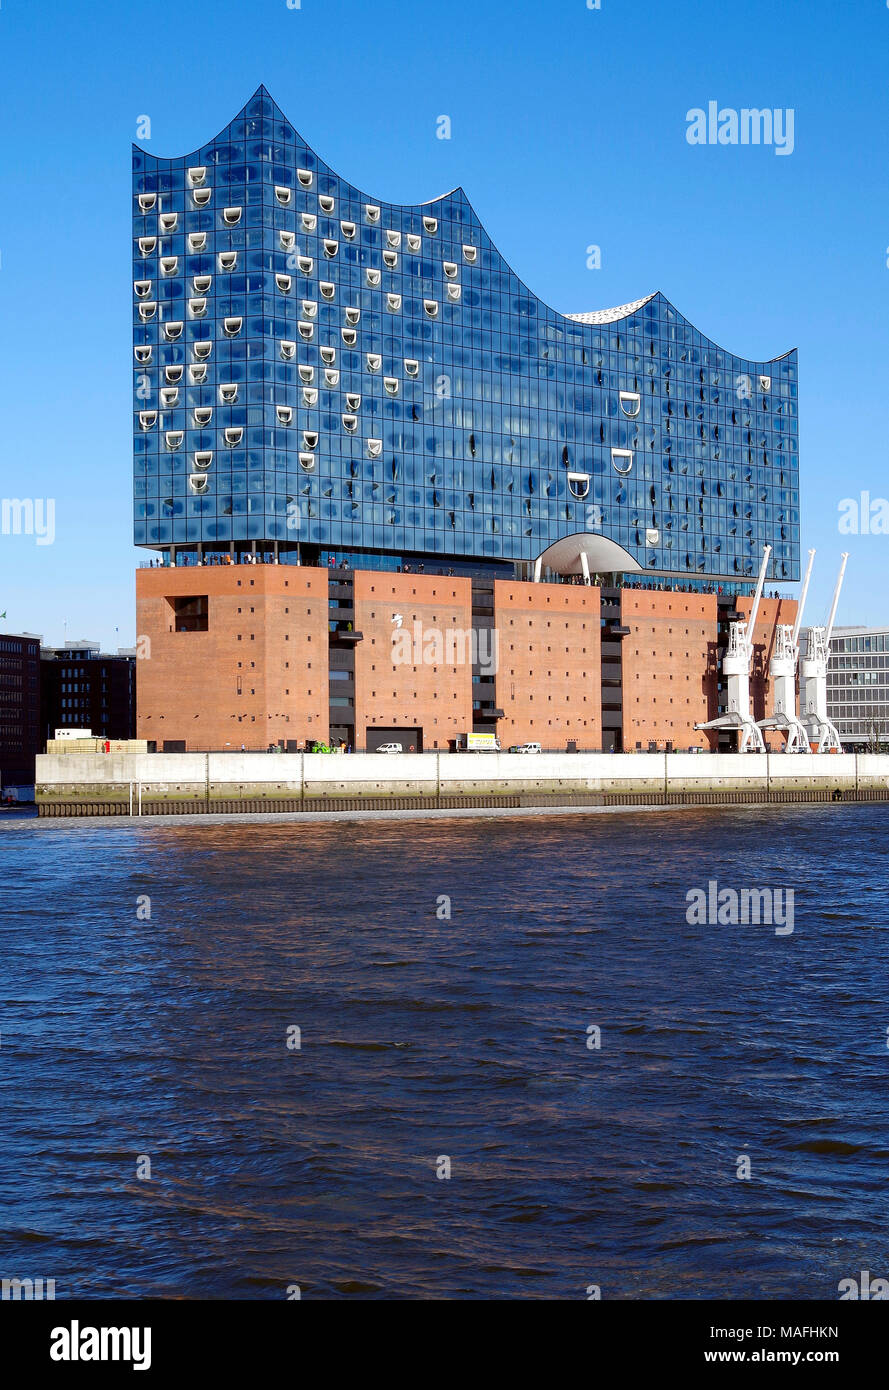 View from the top deck of a ferry of the Elbphilharmonie concert hall on a peninsula jutting out into the river Elbe, in Hamburg Germany Stock Photo